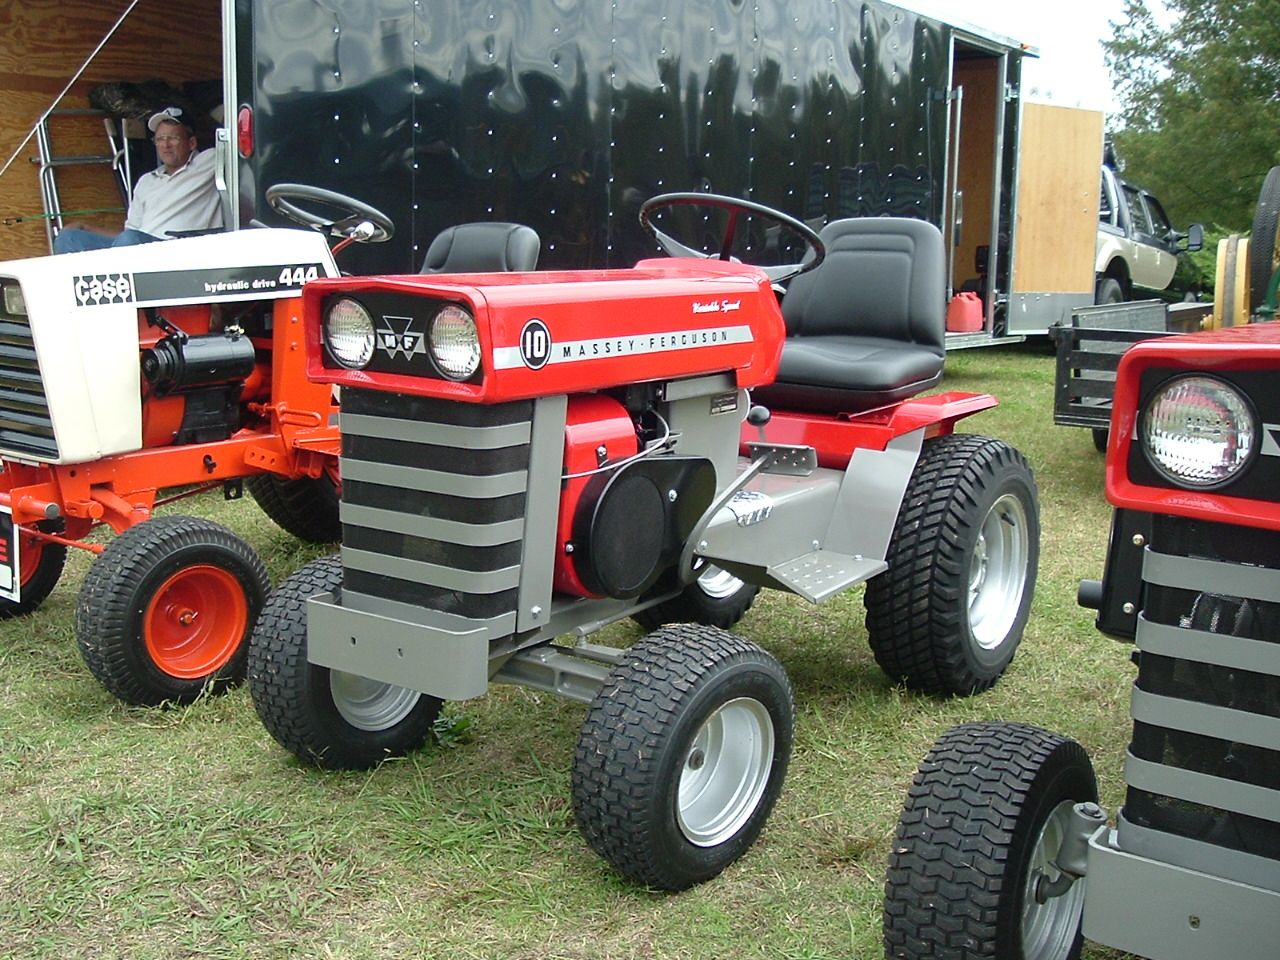 Massey Ferguson 10 Lawn and Garden Lawn Mower, Tractor Mower, Lawn  Tractors, Old